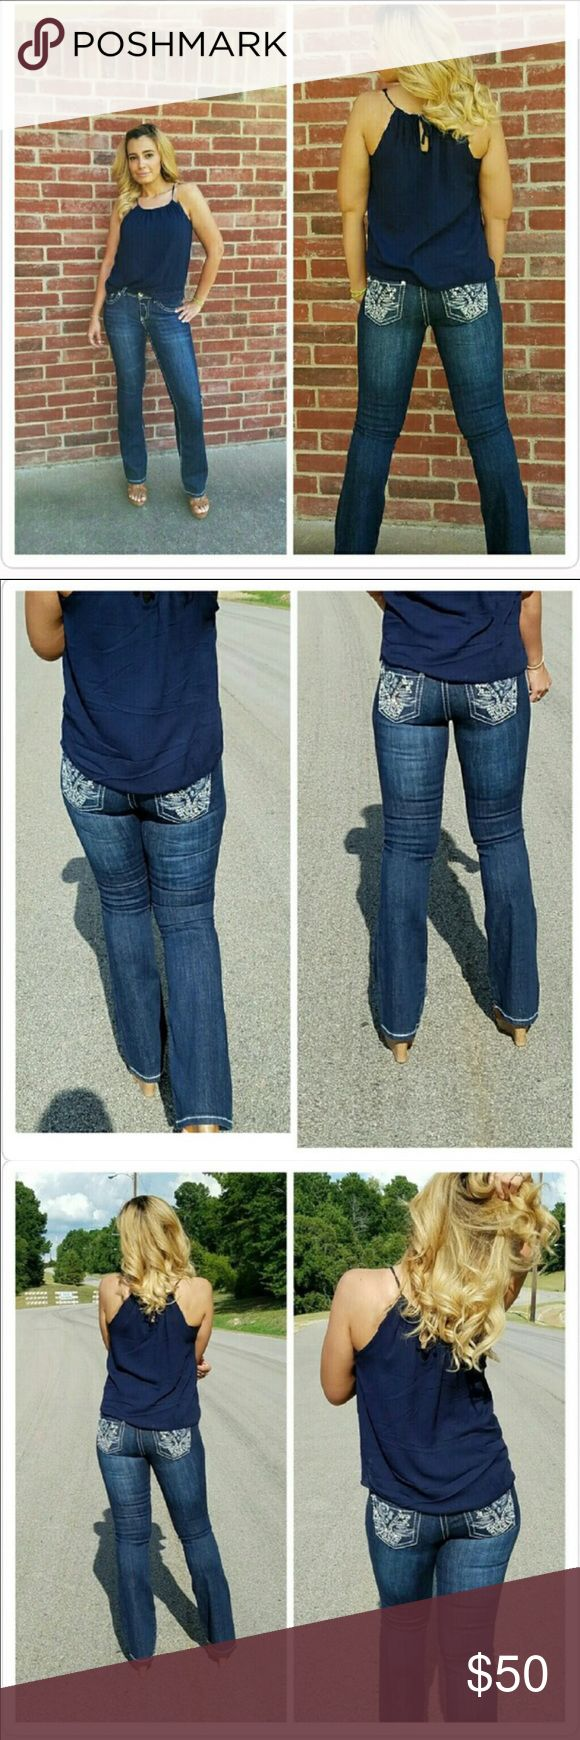 💖💖FLASH SALE!!!💖💖 Sassy Rose Embellished Jeans Mid rise, boot cut denim jeans with embroidery and stud, rhinestones detail on back pockets, rhinestone rivets, and contrast top stitch detail. Sizes are 1, 3, 5, 7, 9, 11. Fabric 96% cotton 4% Spandex. TTS!! Jeans Boot Cut